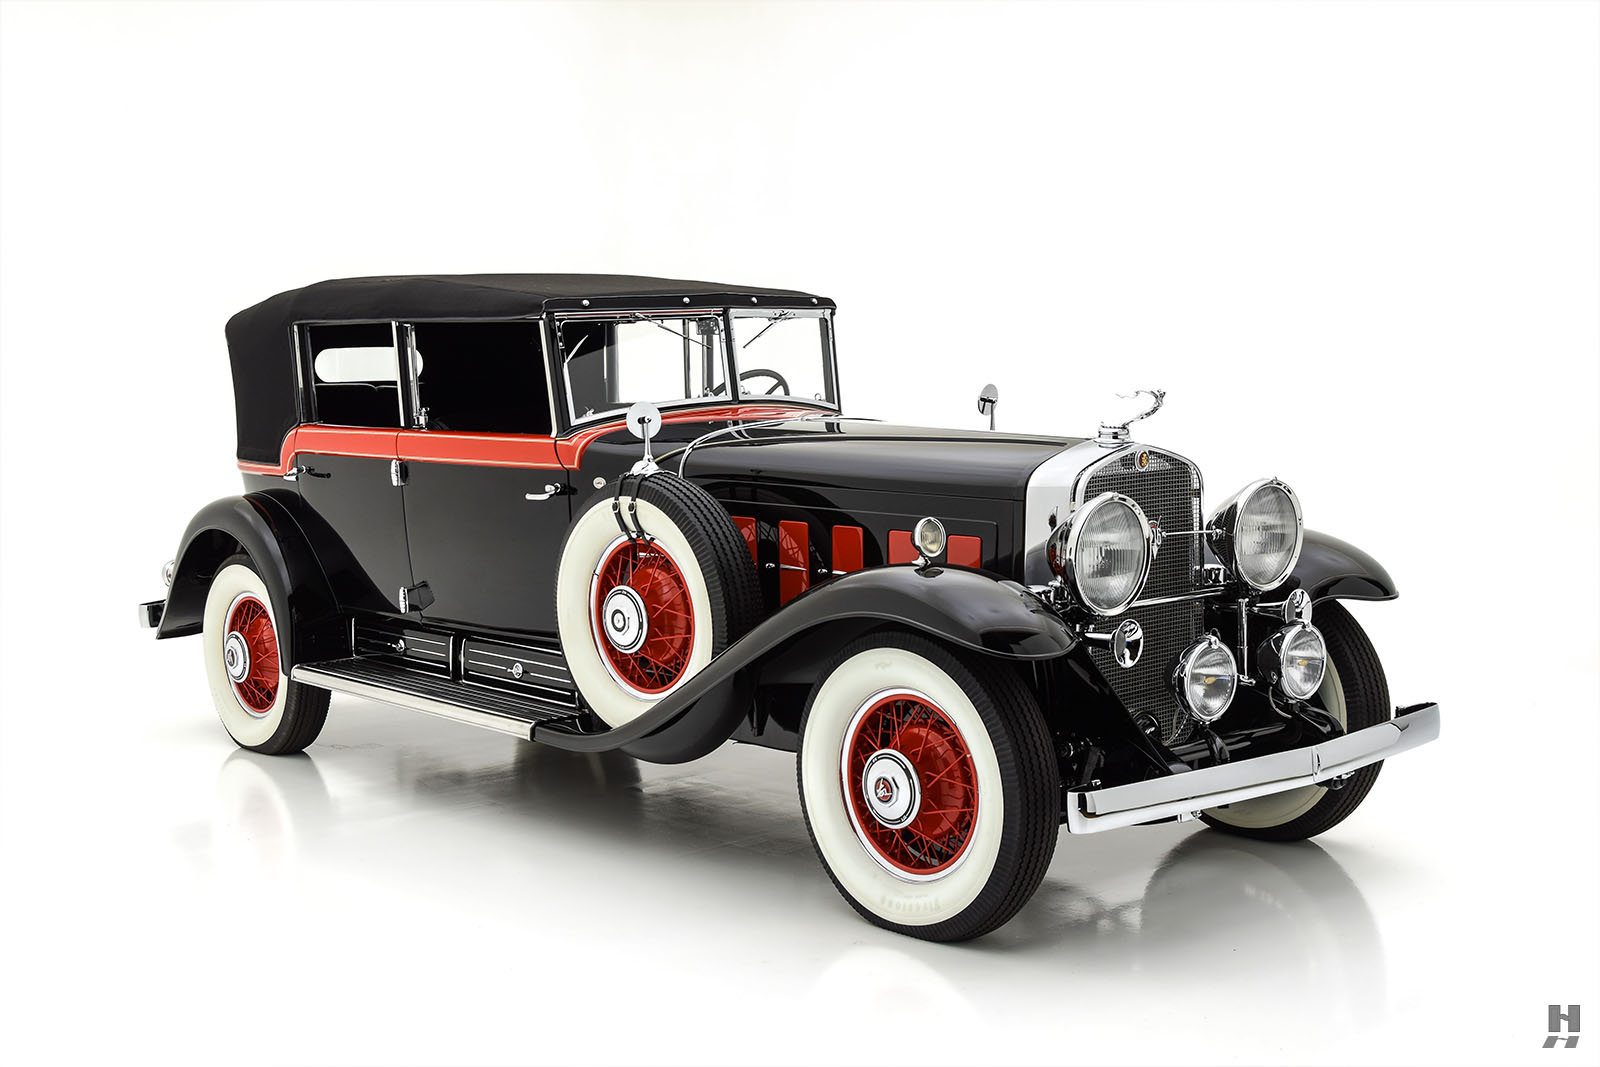 1930 CADILLAC 452 V16 ALL WEATHER PHAETON For Sale (picture 2 of 6)